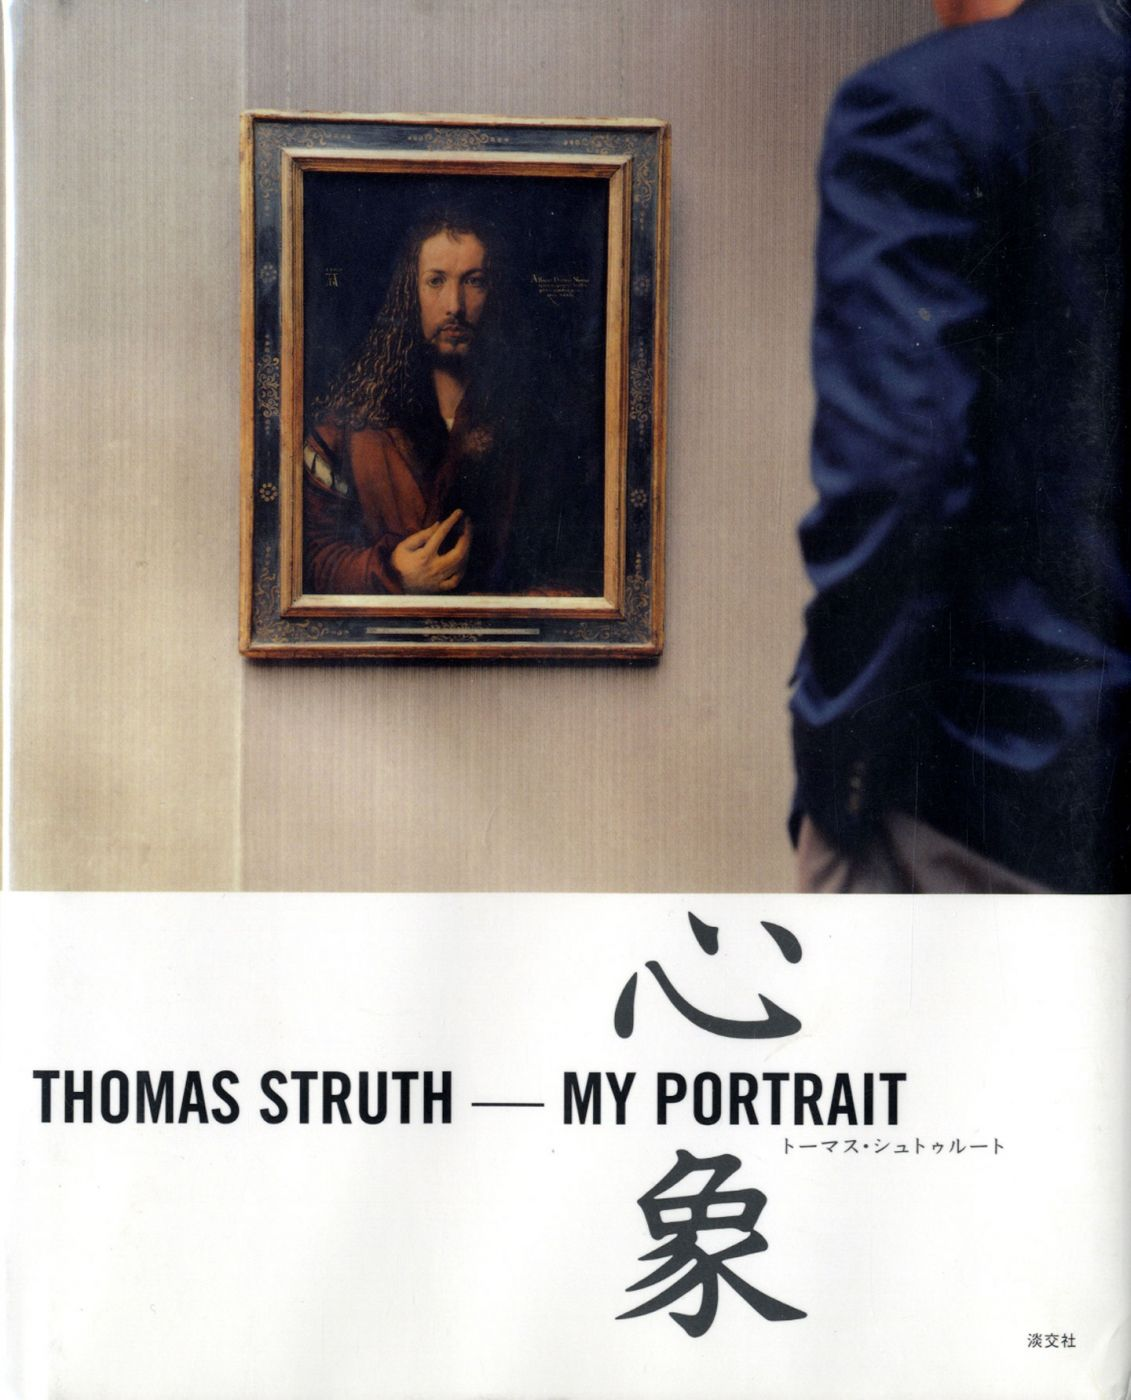 Thomas Struth: My Portrait